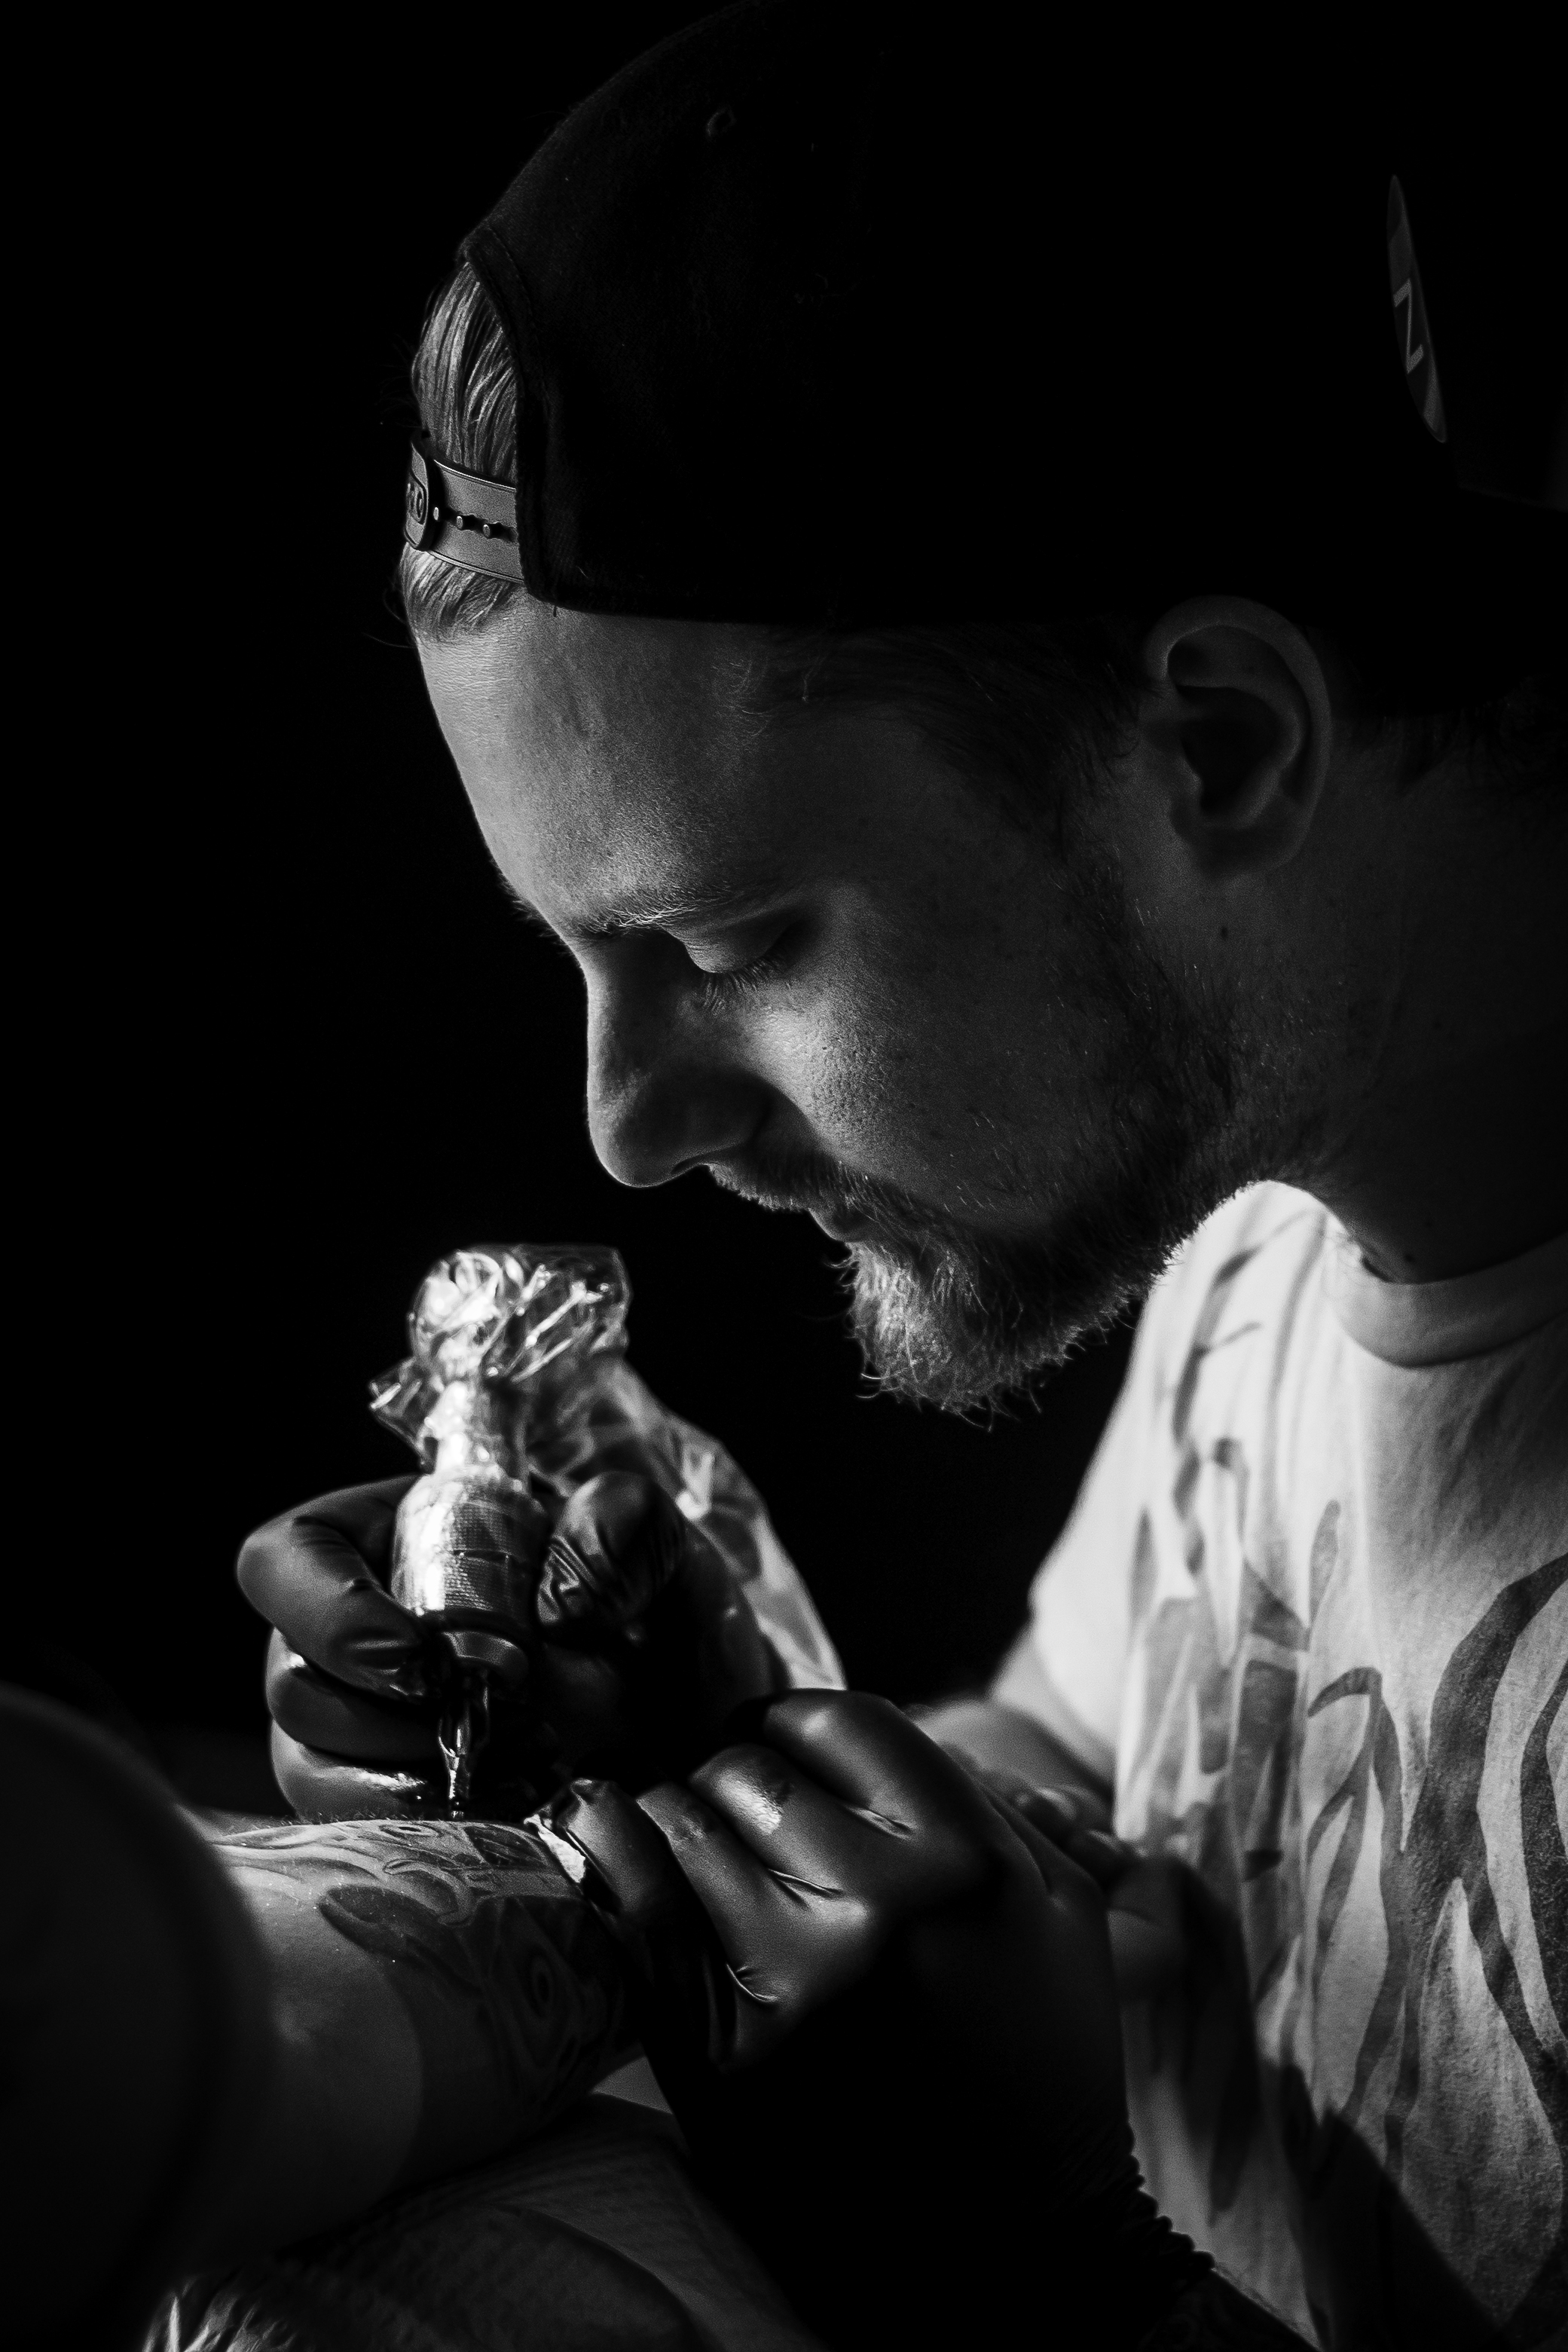 Tattoo Artist Portrait BnW